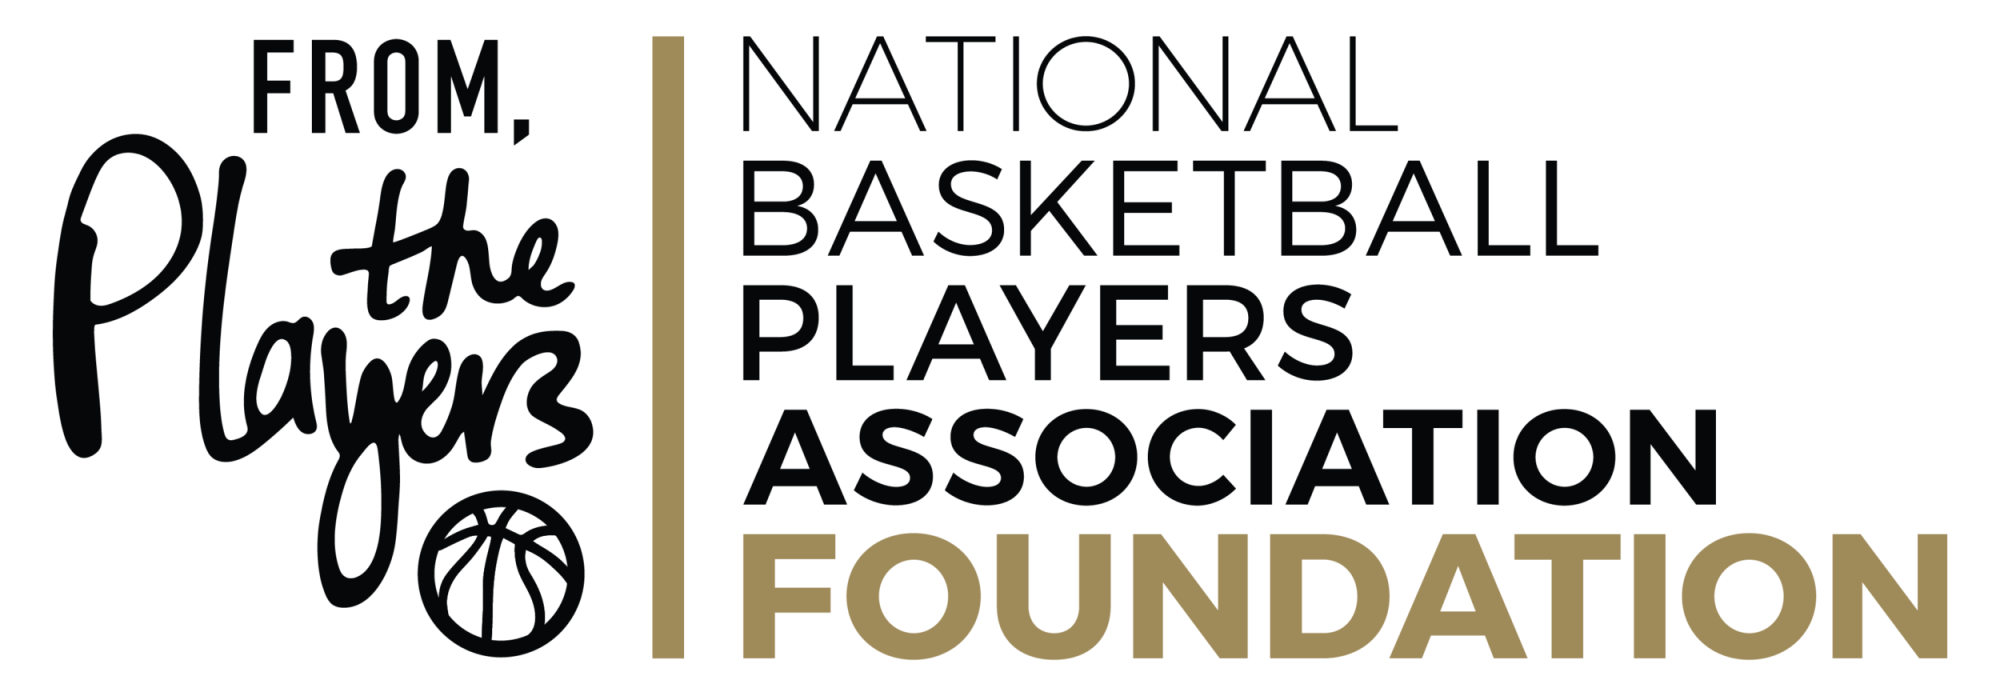 hight resolution of nbpa foundation from the players logo lockup black 1